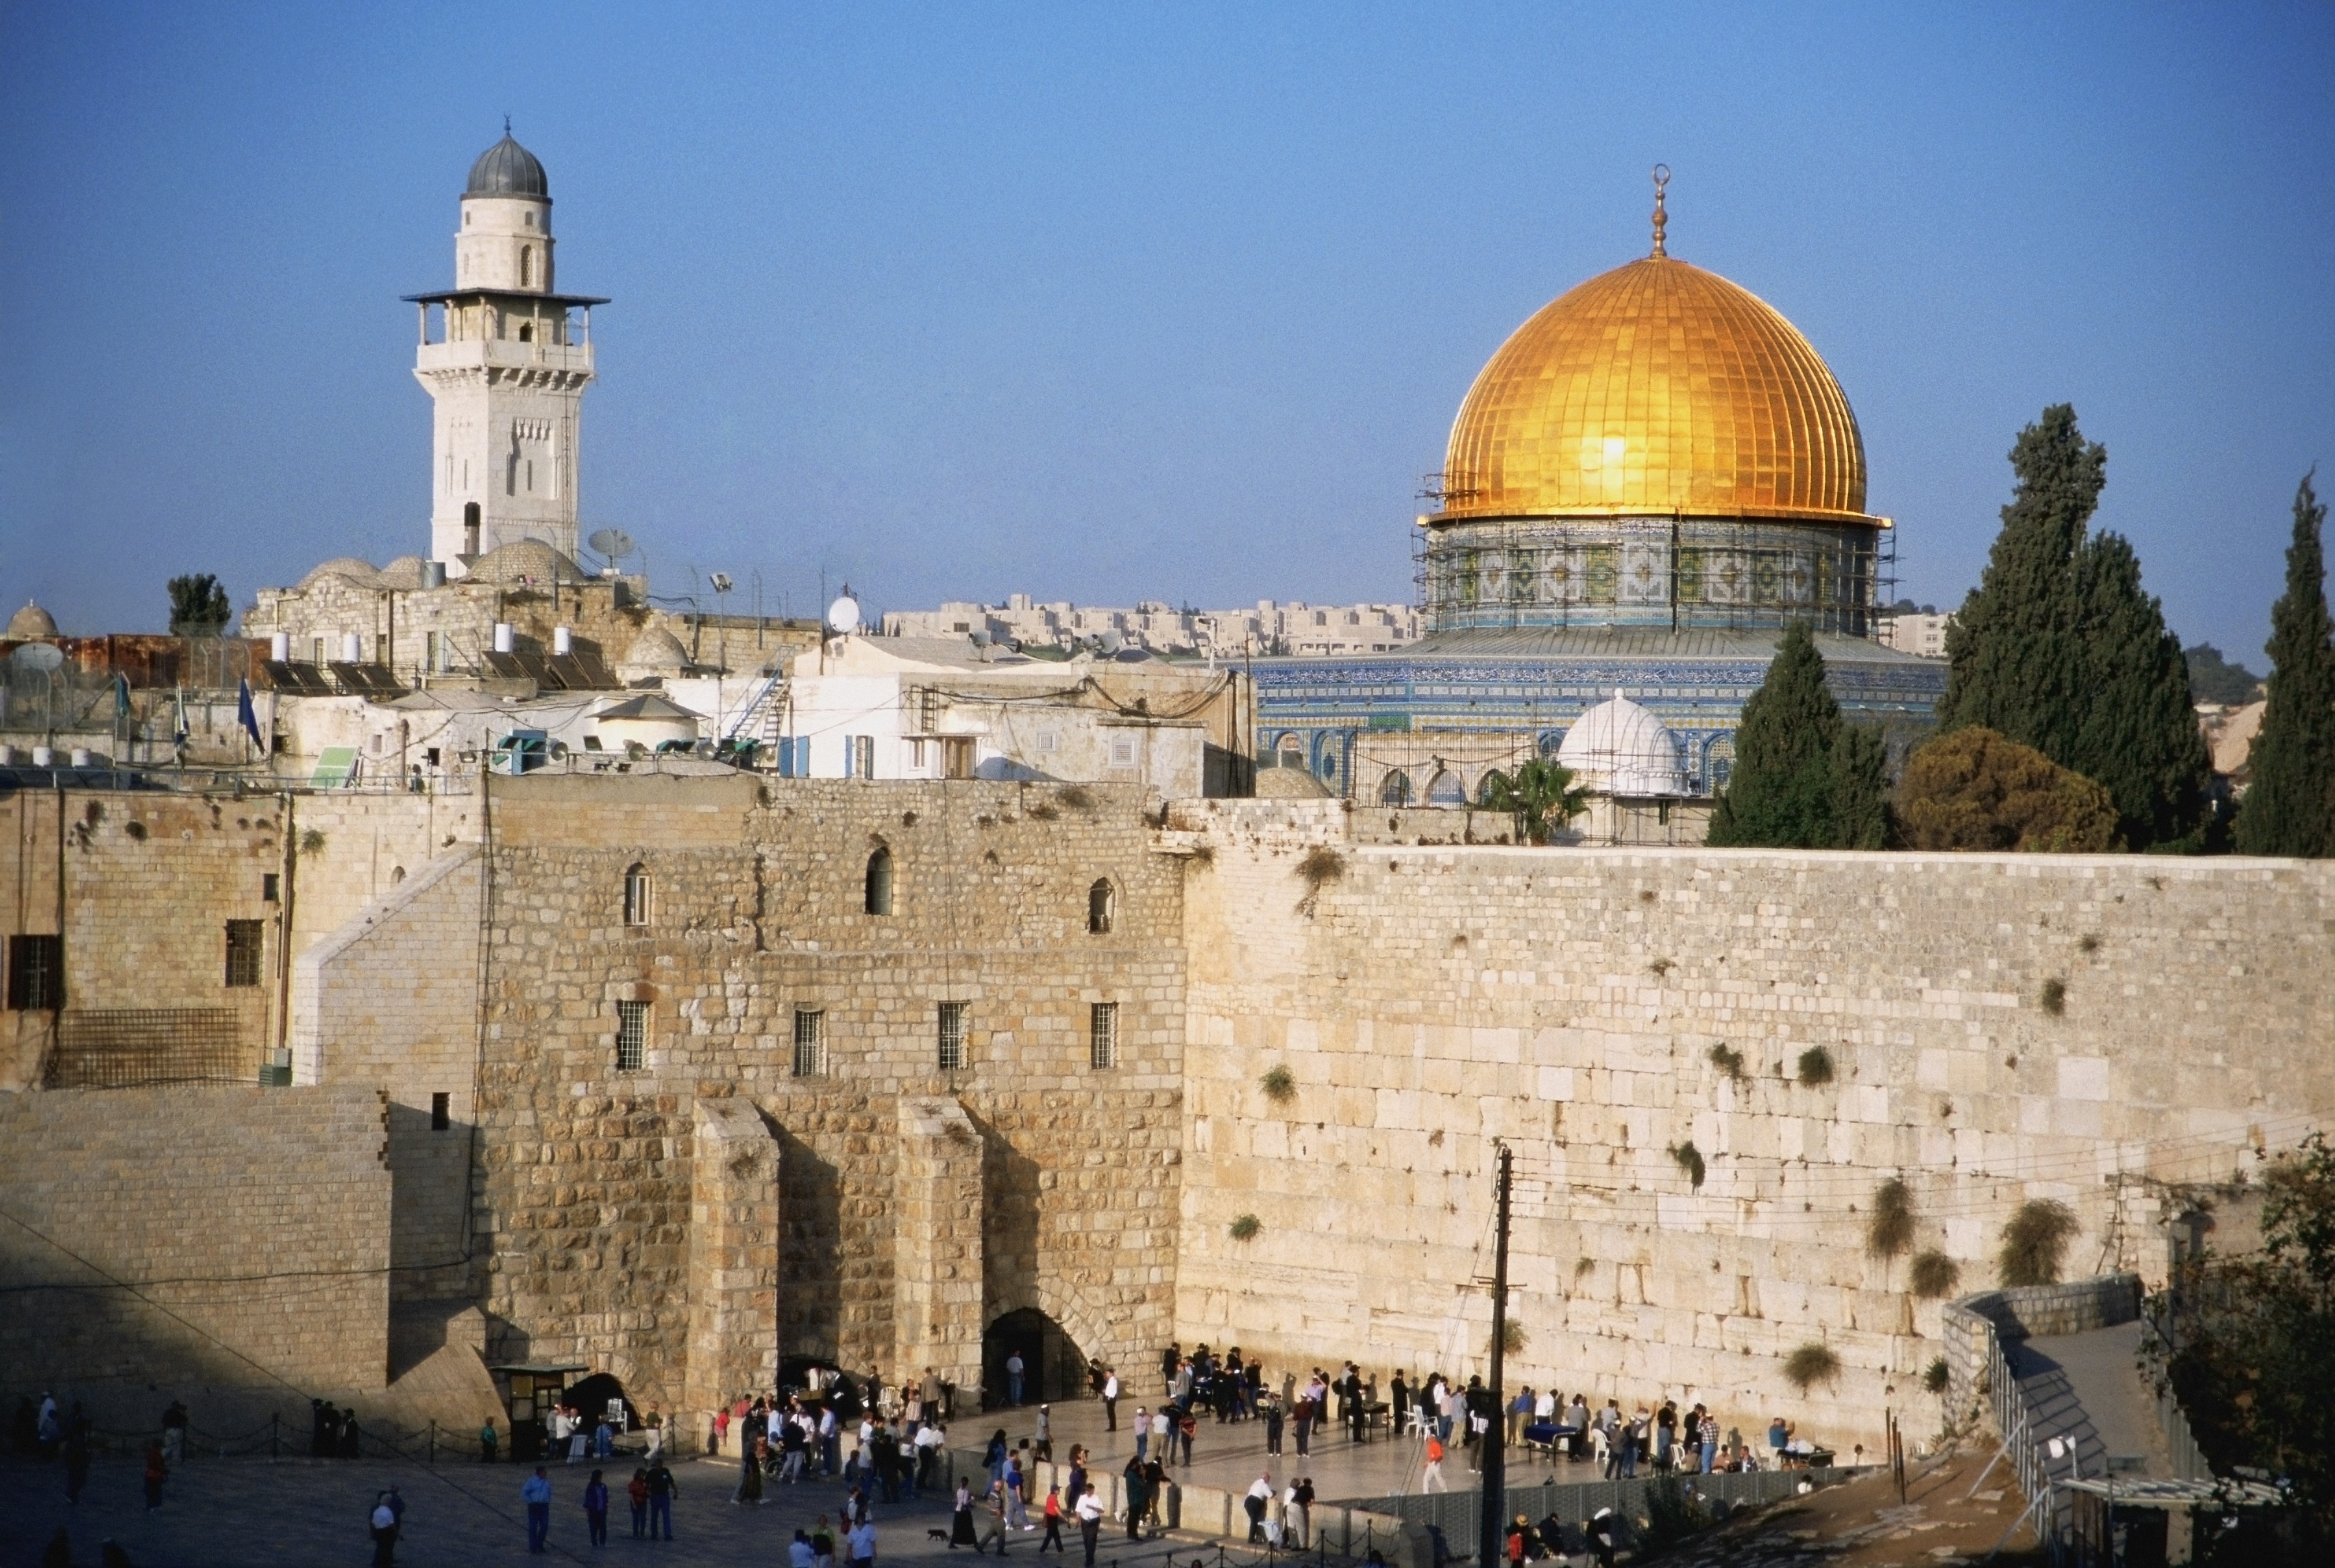 Western Wall (Wailing Wall) & Golden Dome